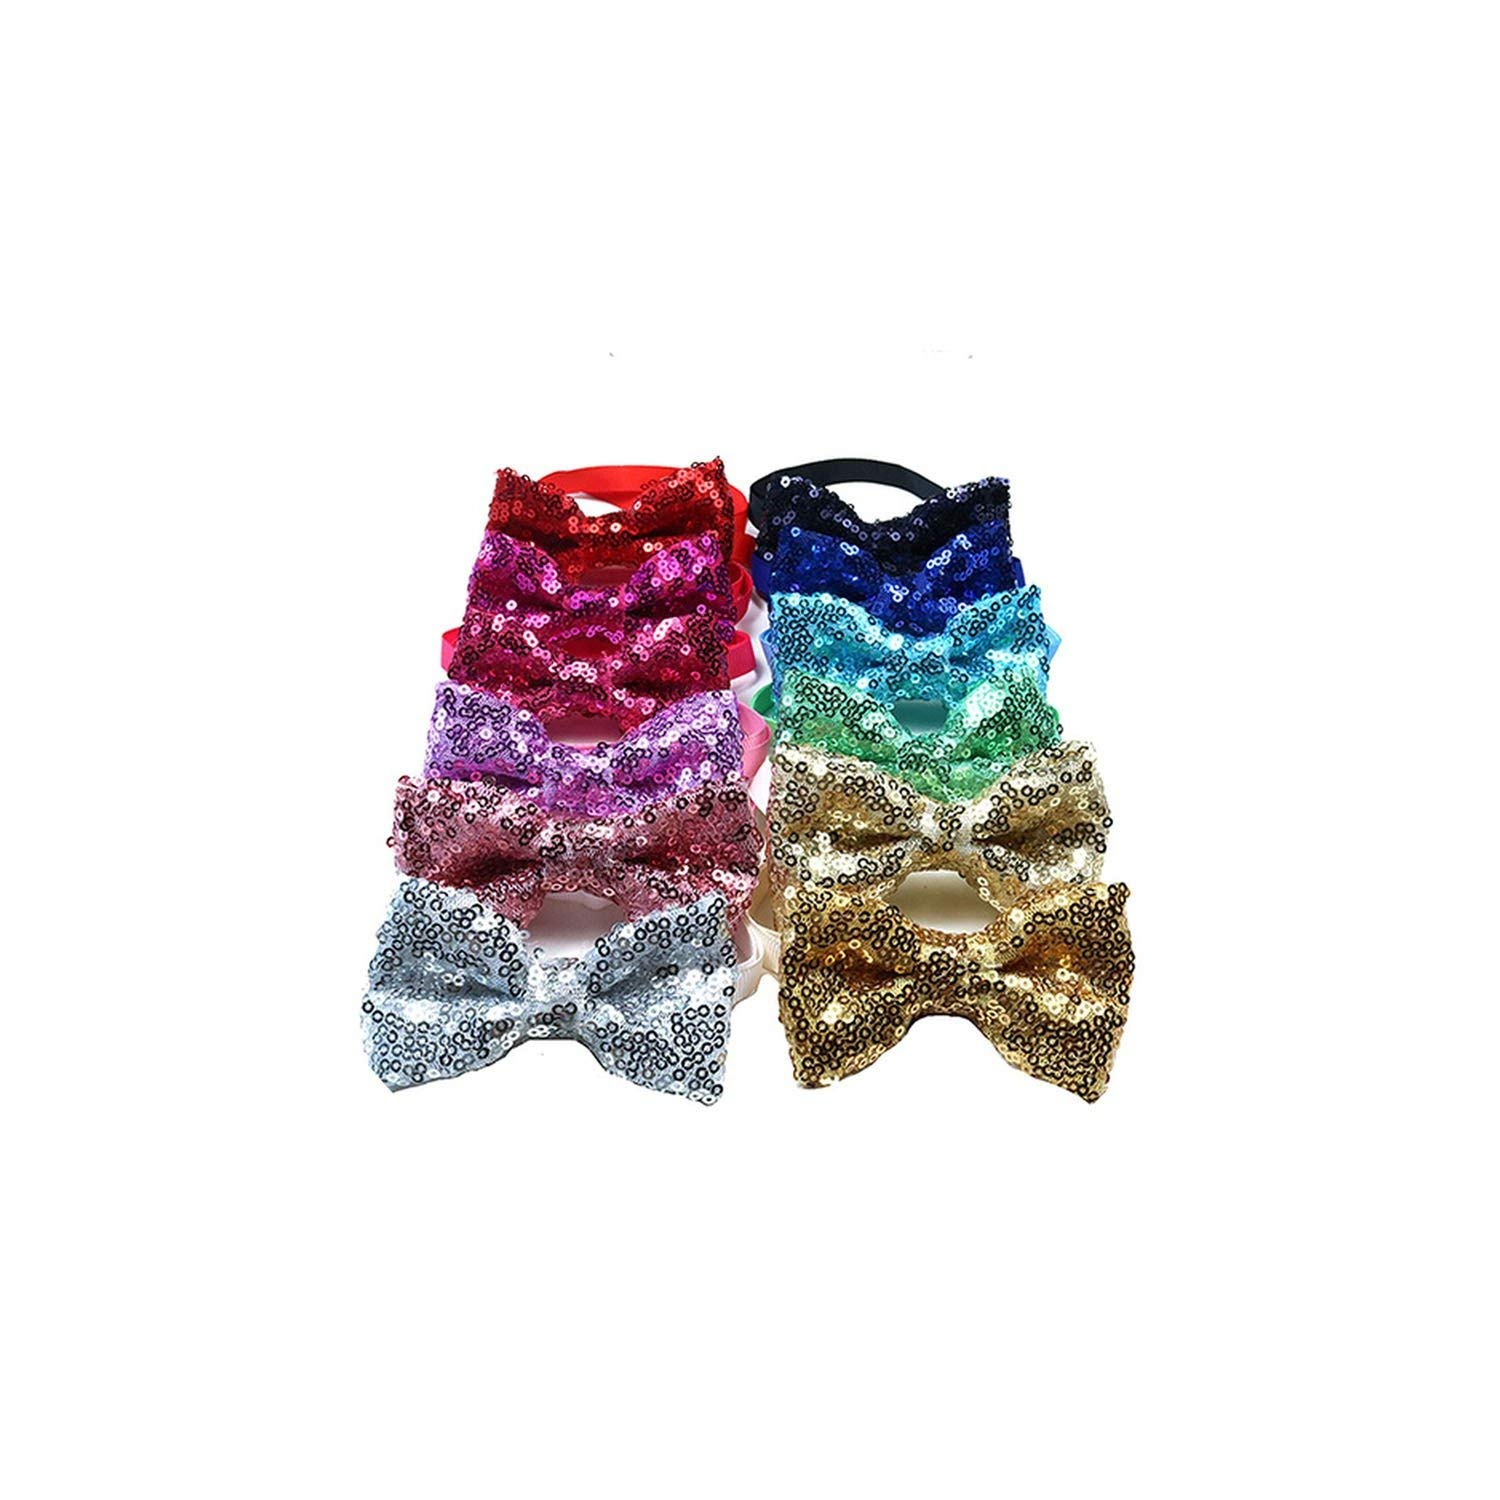 60PCS Pet Dog Cat Puppy Bow Ties Adjustable Shinning Sequins Bowknot Dog Bowties Dog Grooming Bows Dog Accessories Pet Supplies,Mixed Colors,M